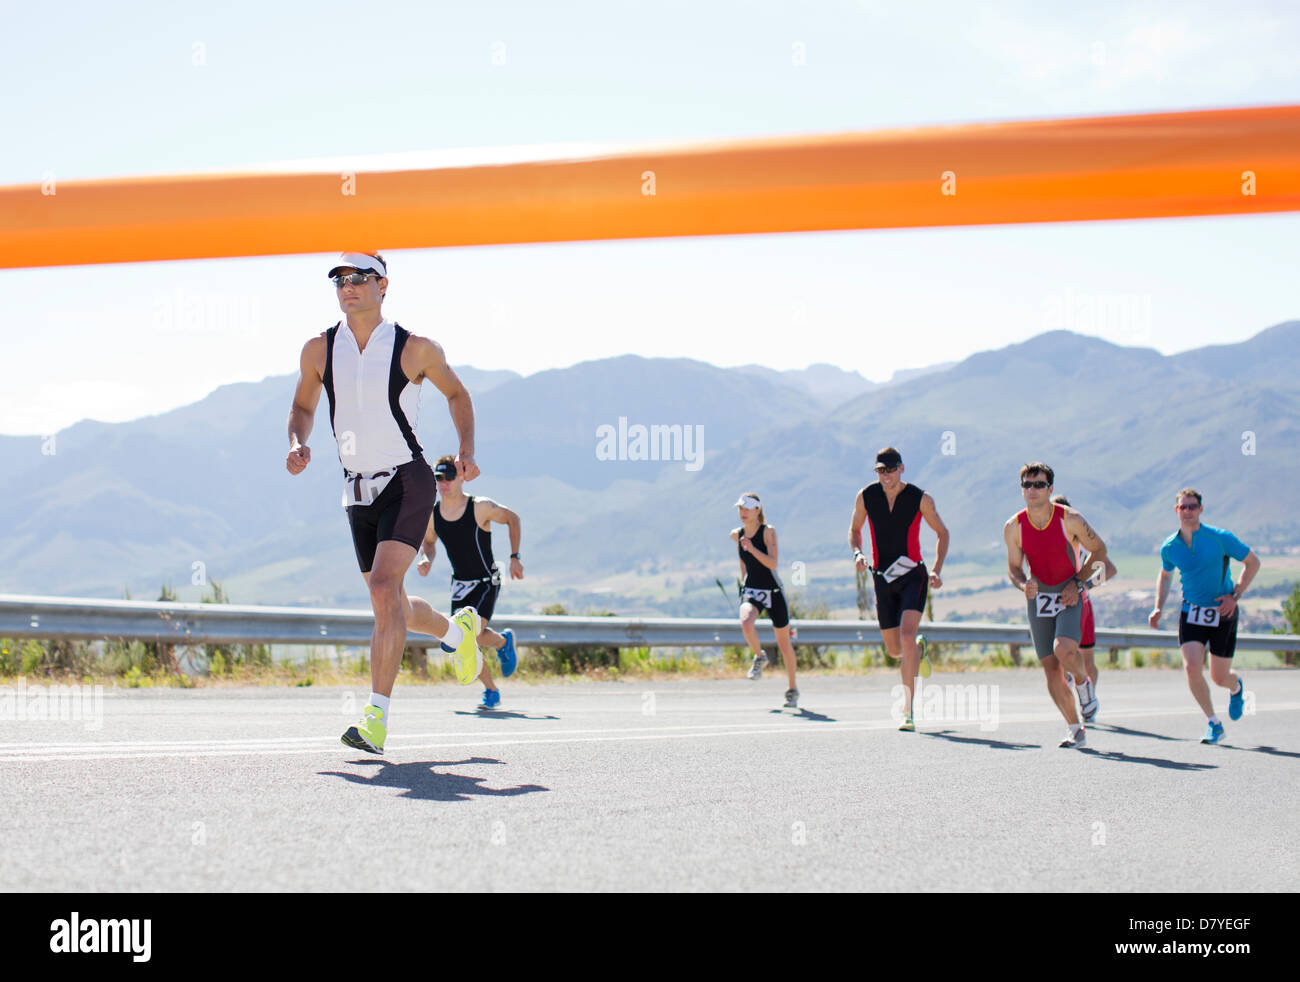 Runners crossing race finish line - Stock Image